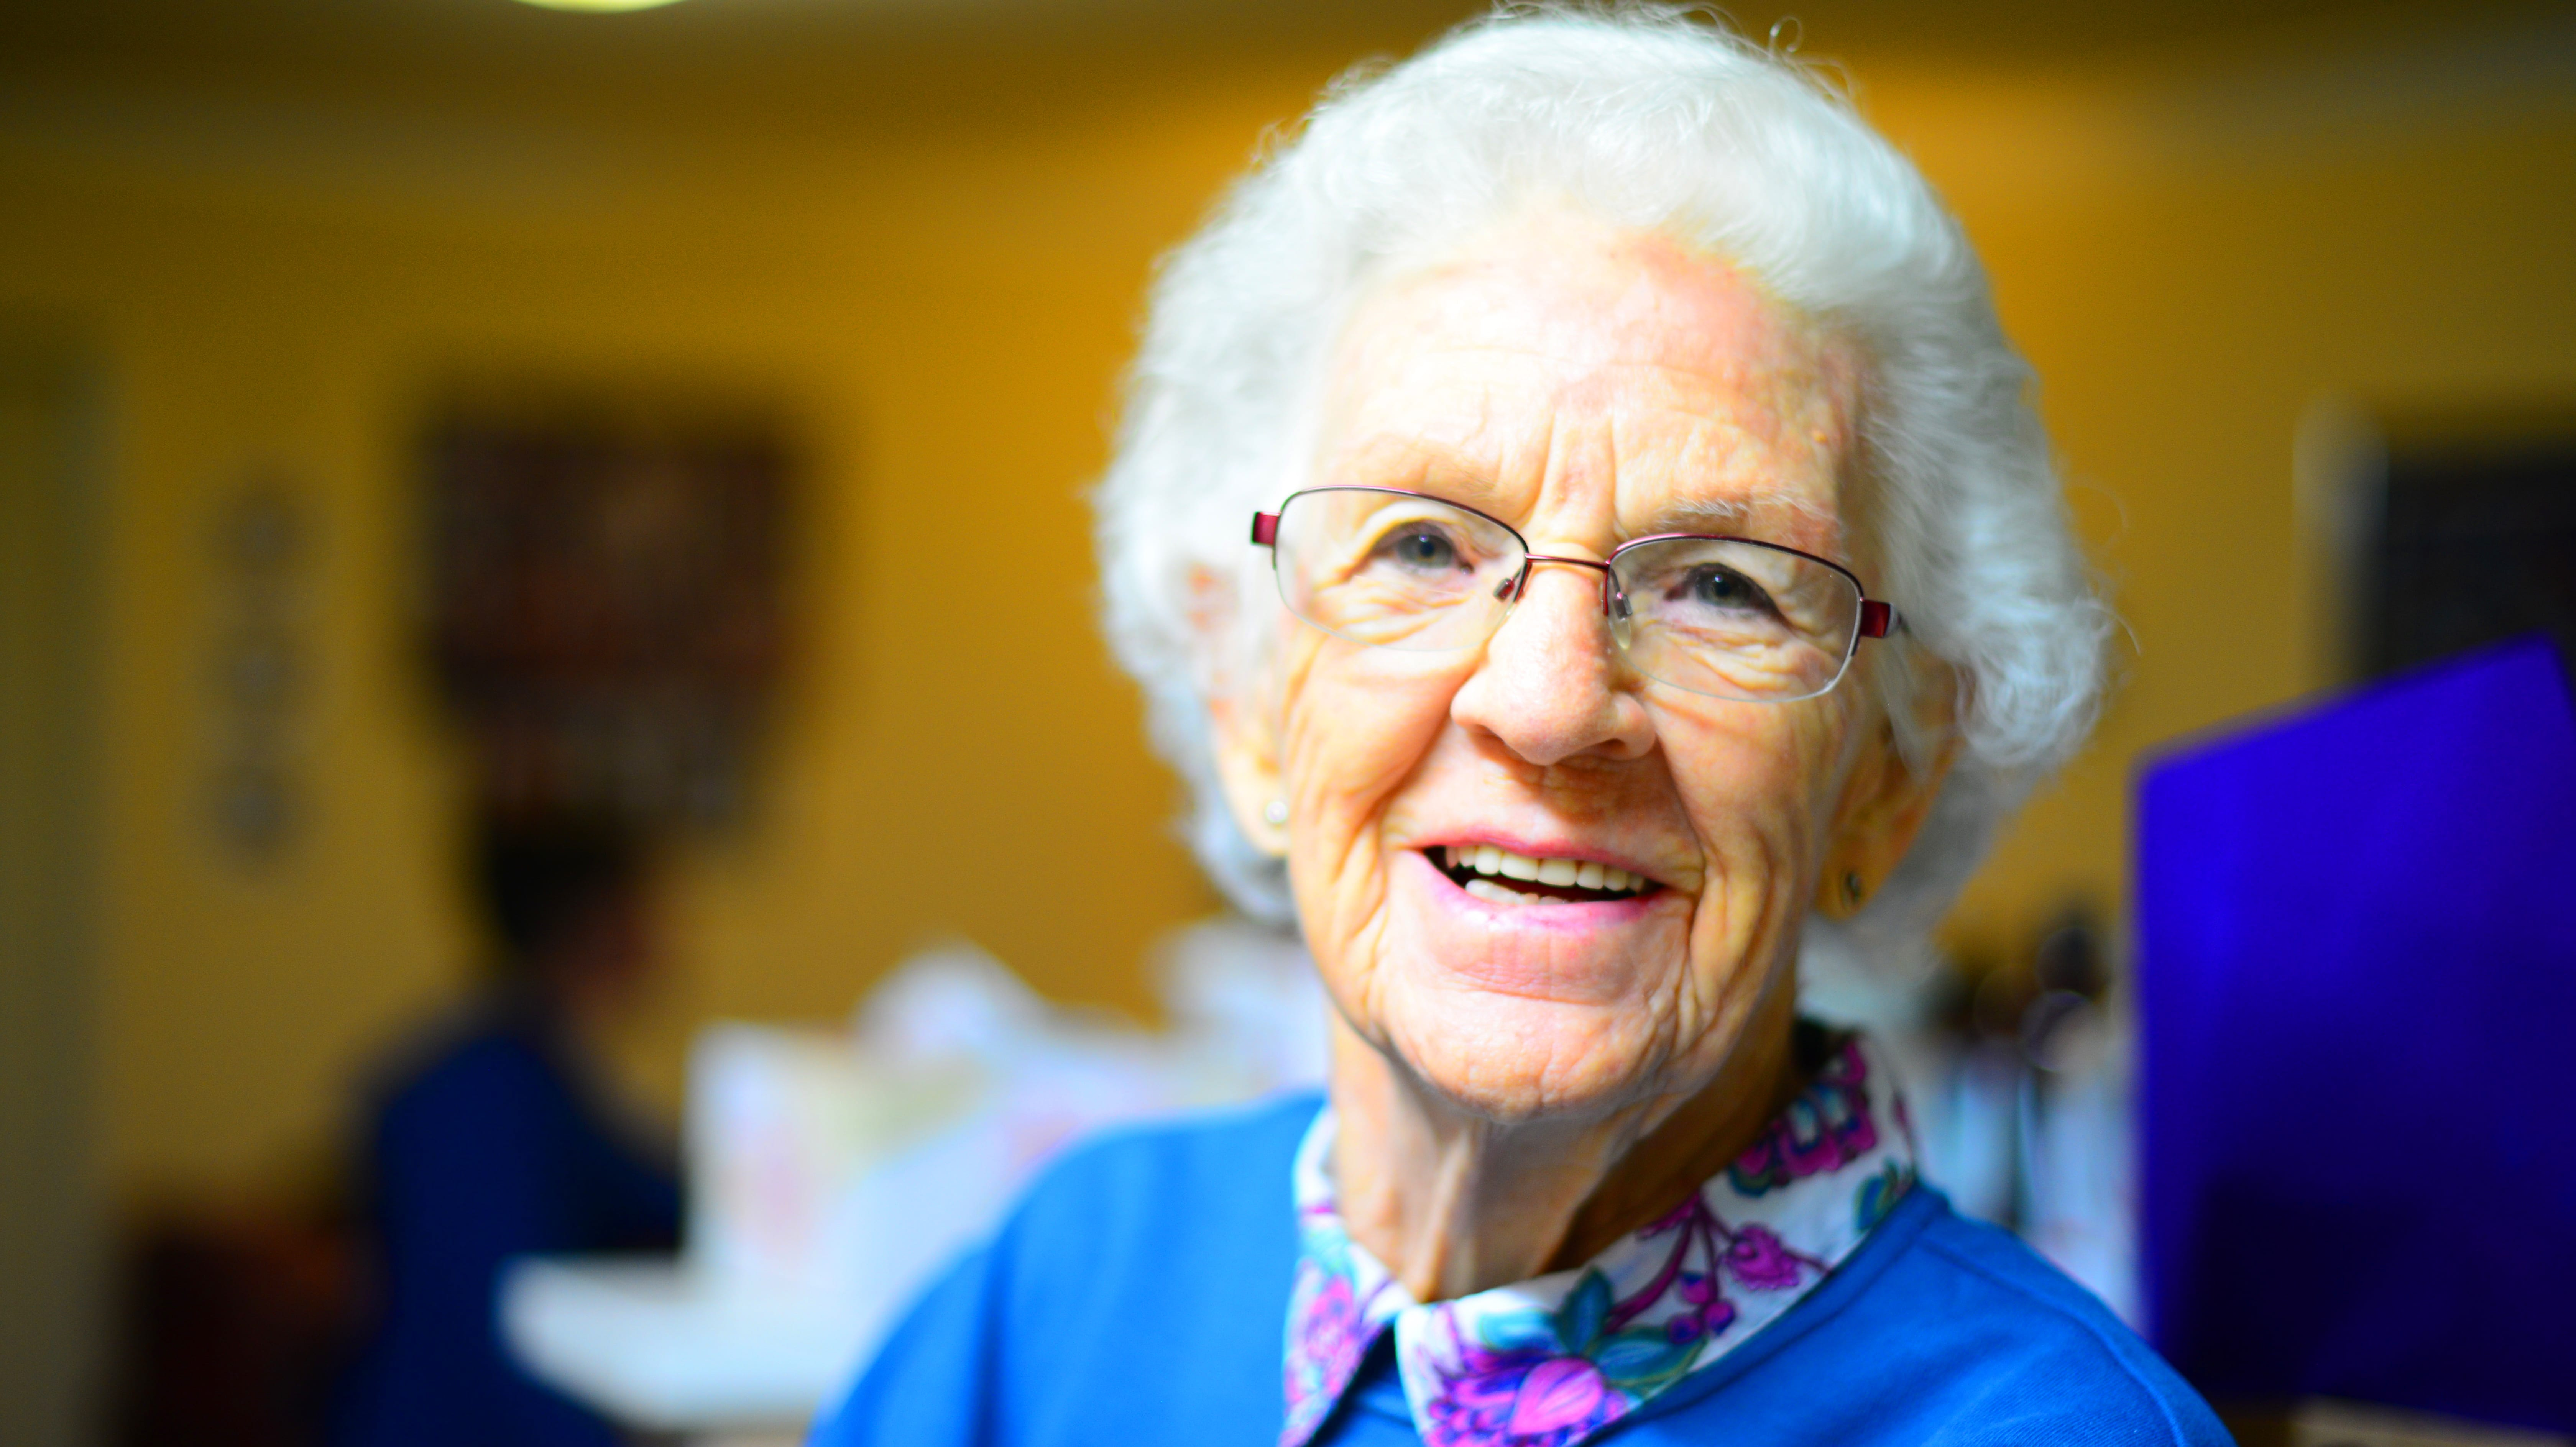 Kingsley puts some Oomph! into its care homes with new wellbeing partnership!